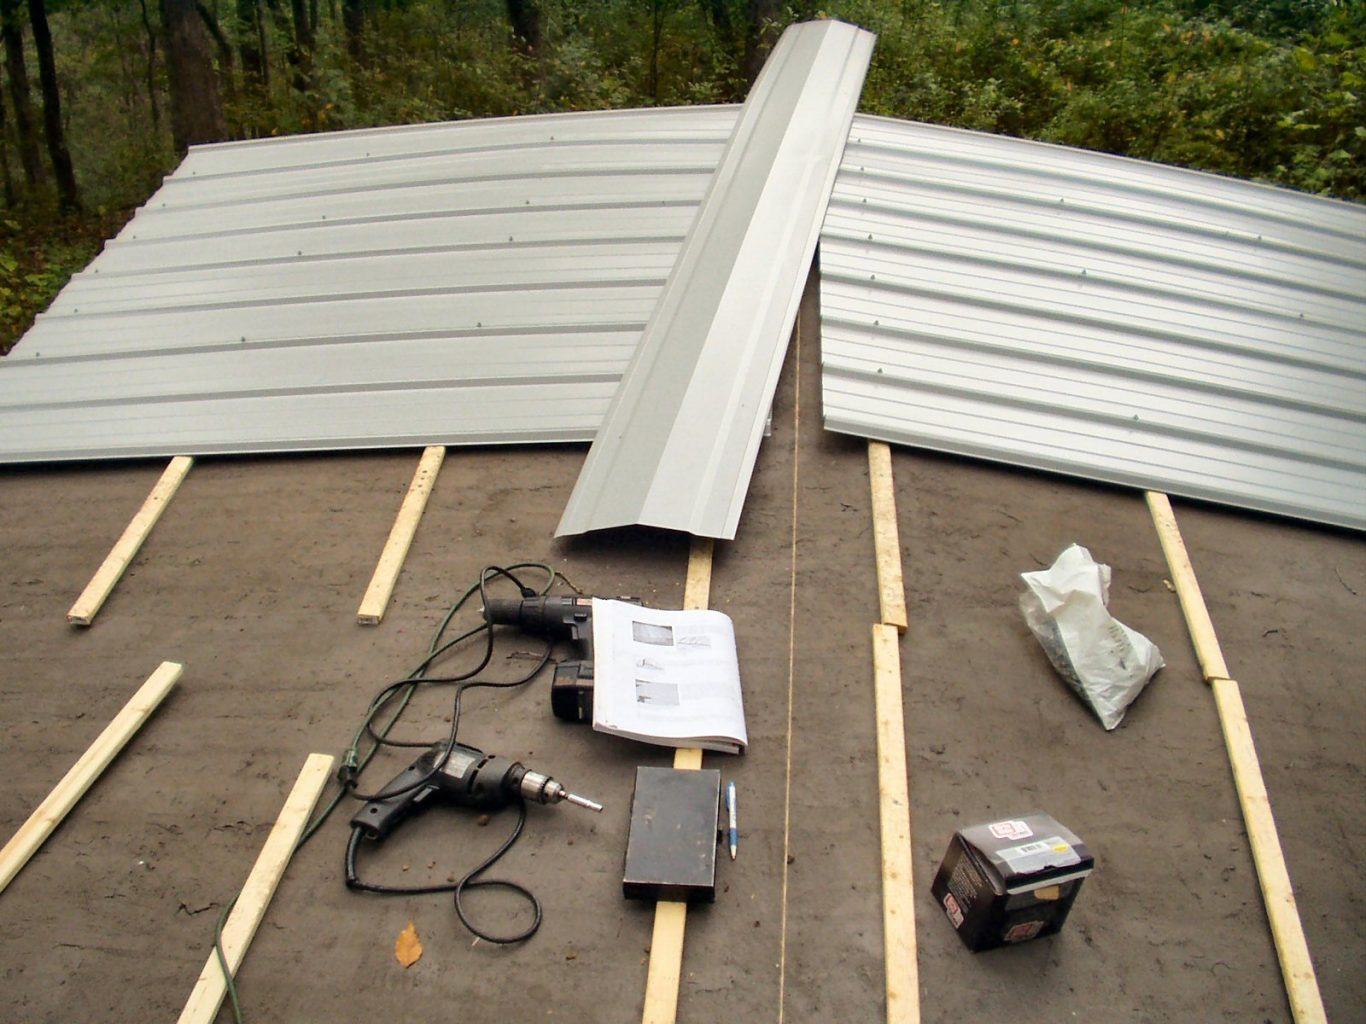 How to Install a Metal Roof Over Shingles with Proper Tools